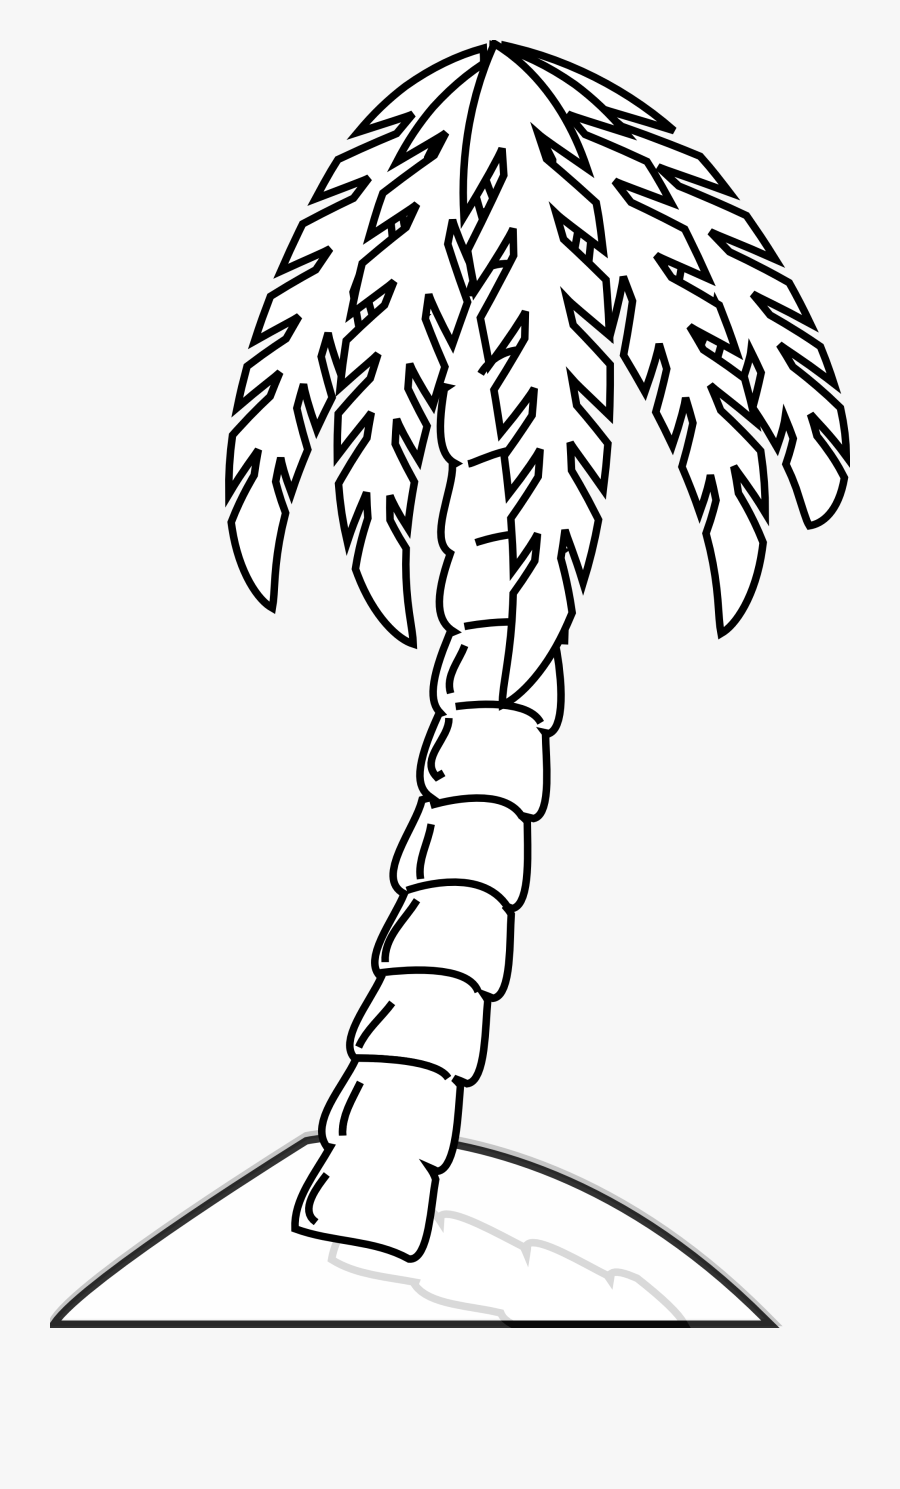 Palm Tree Clipart Black And White - Palm Tree Black And White Clipart Png, Transparent Clipart